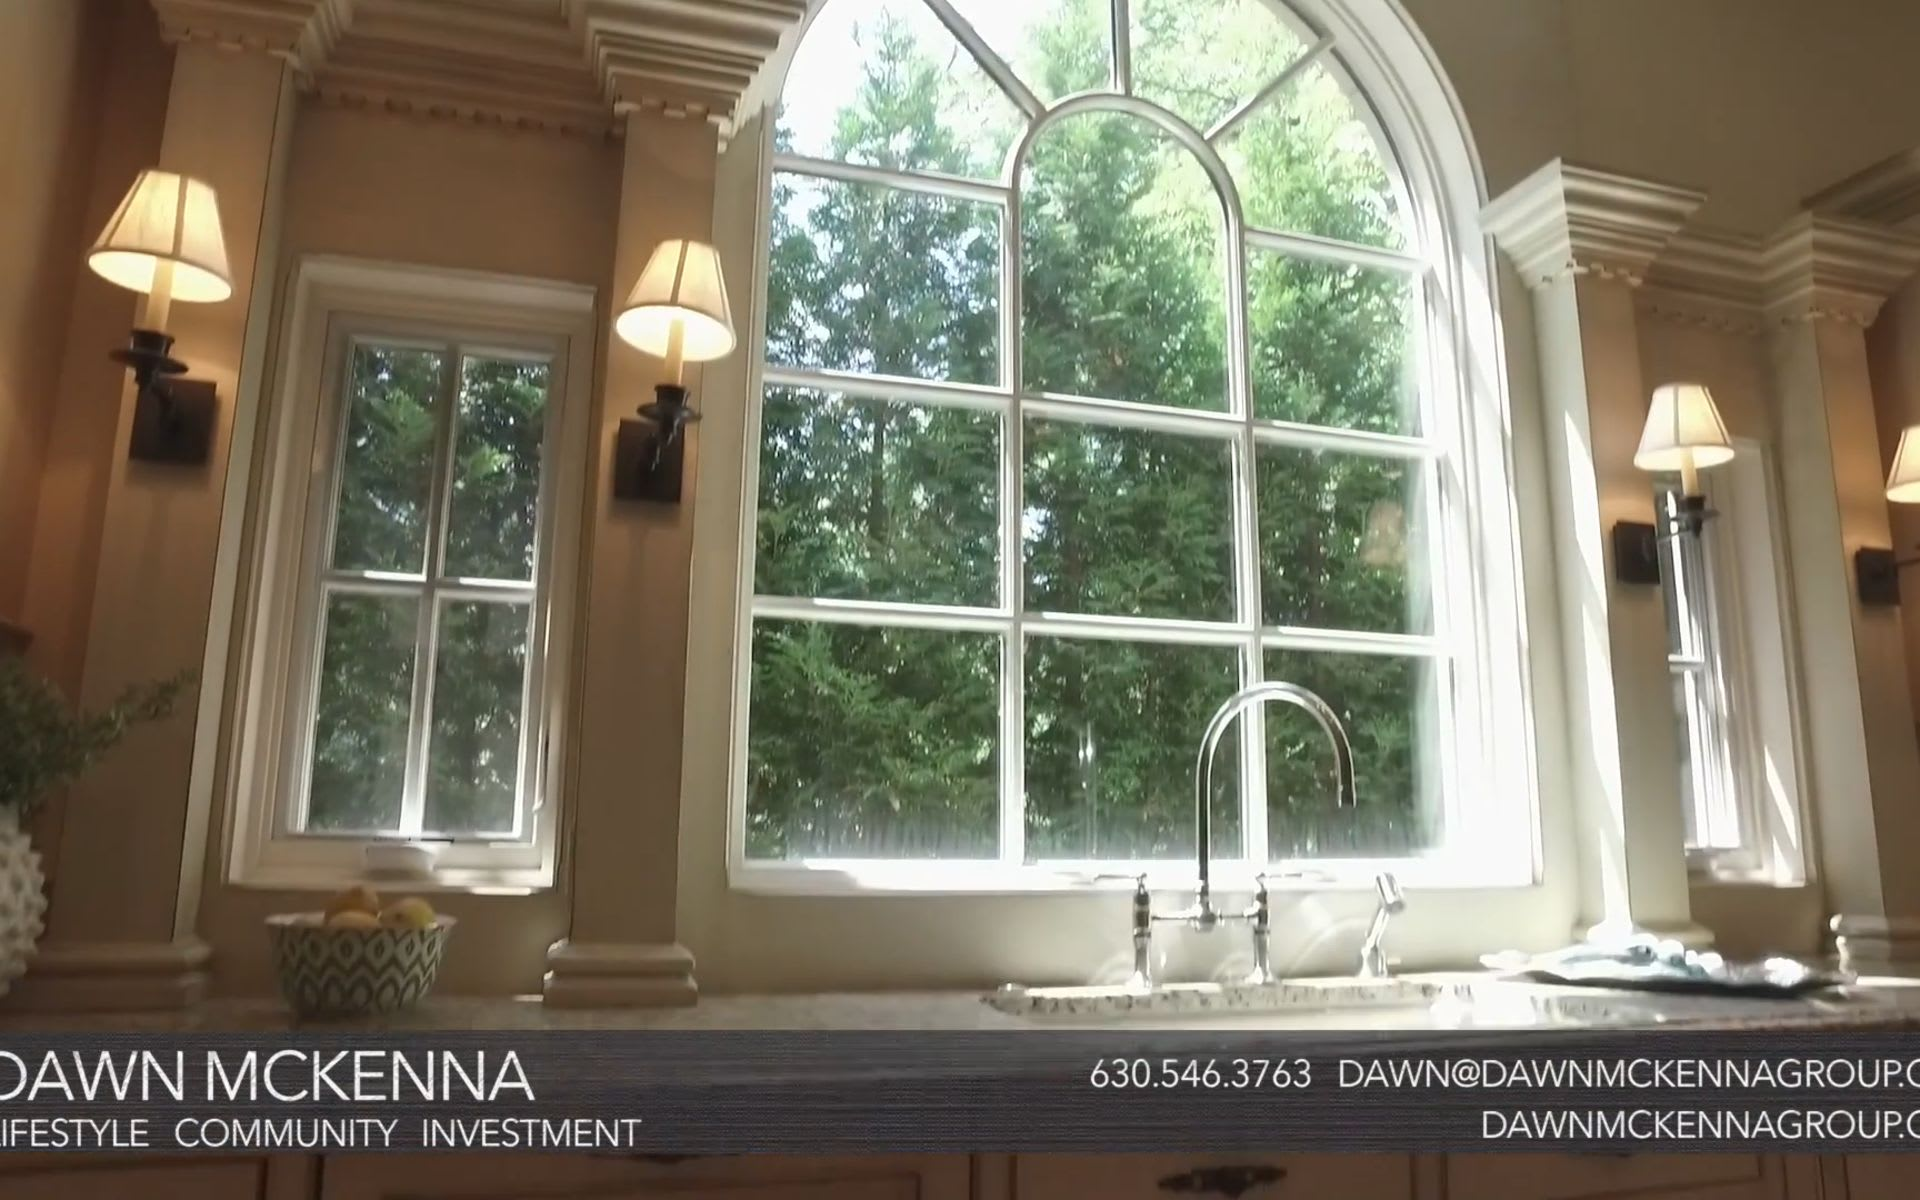 714 SOUTH PARK, HINSDALE, IL DAWN MCKENNA GROUP video preview